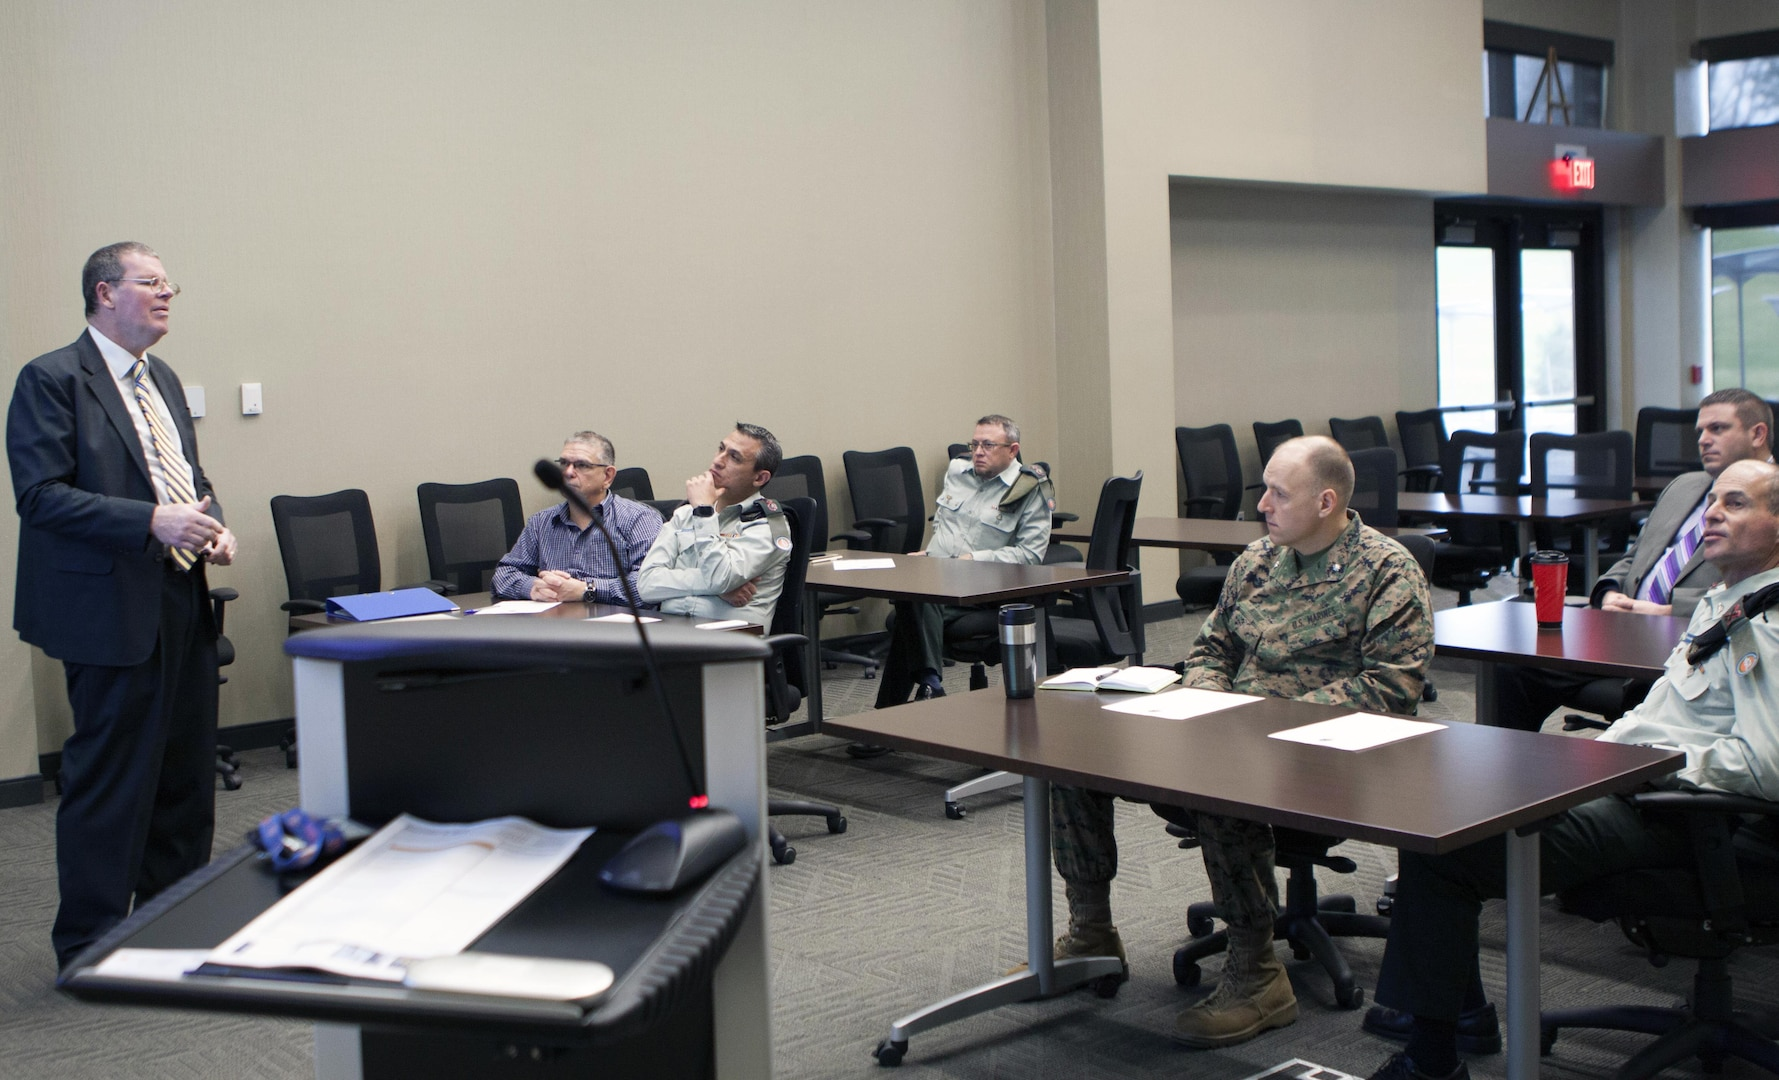 Scott Rosbaugh, director of DLA Distribution's Strategic Plans directorate, discusses DLA Distribution's core capabilities with members of the Israel Defense Forces on December 6.